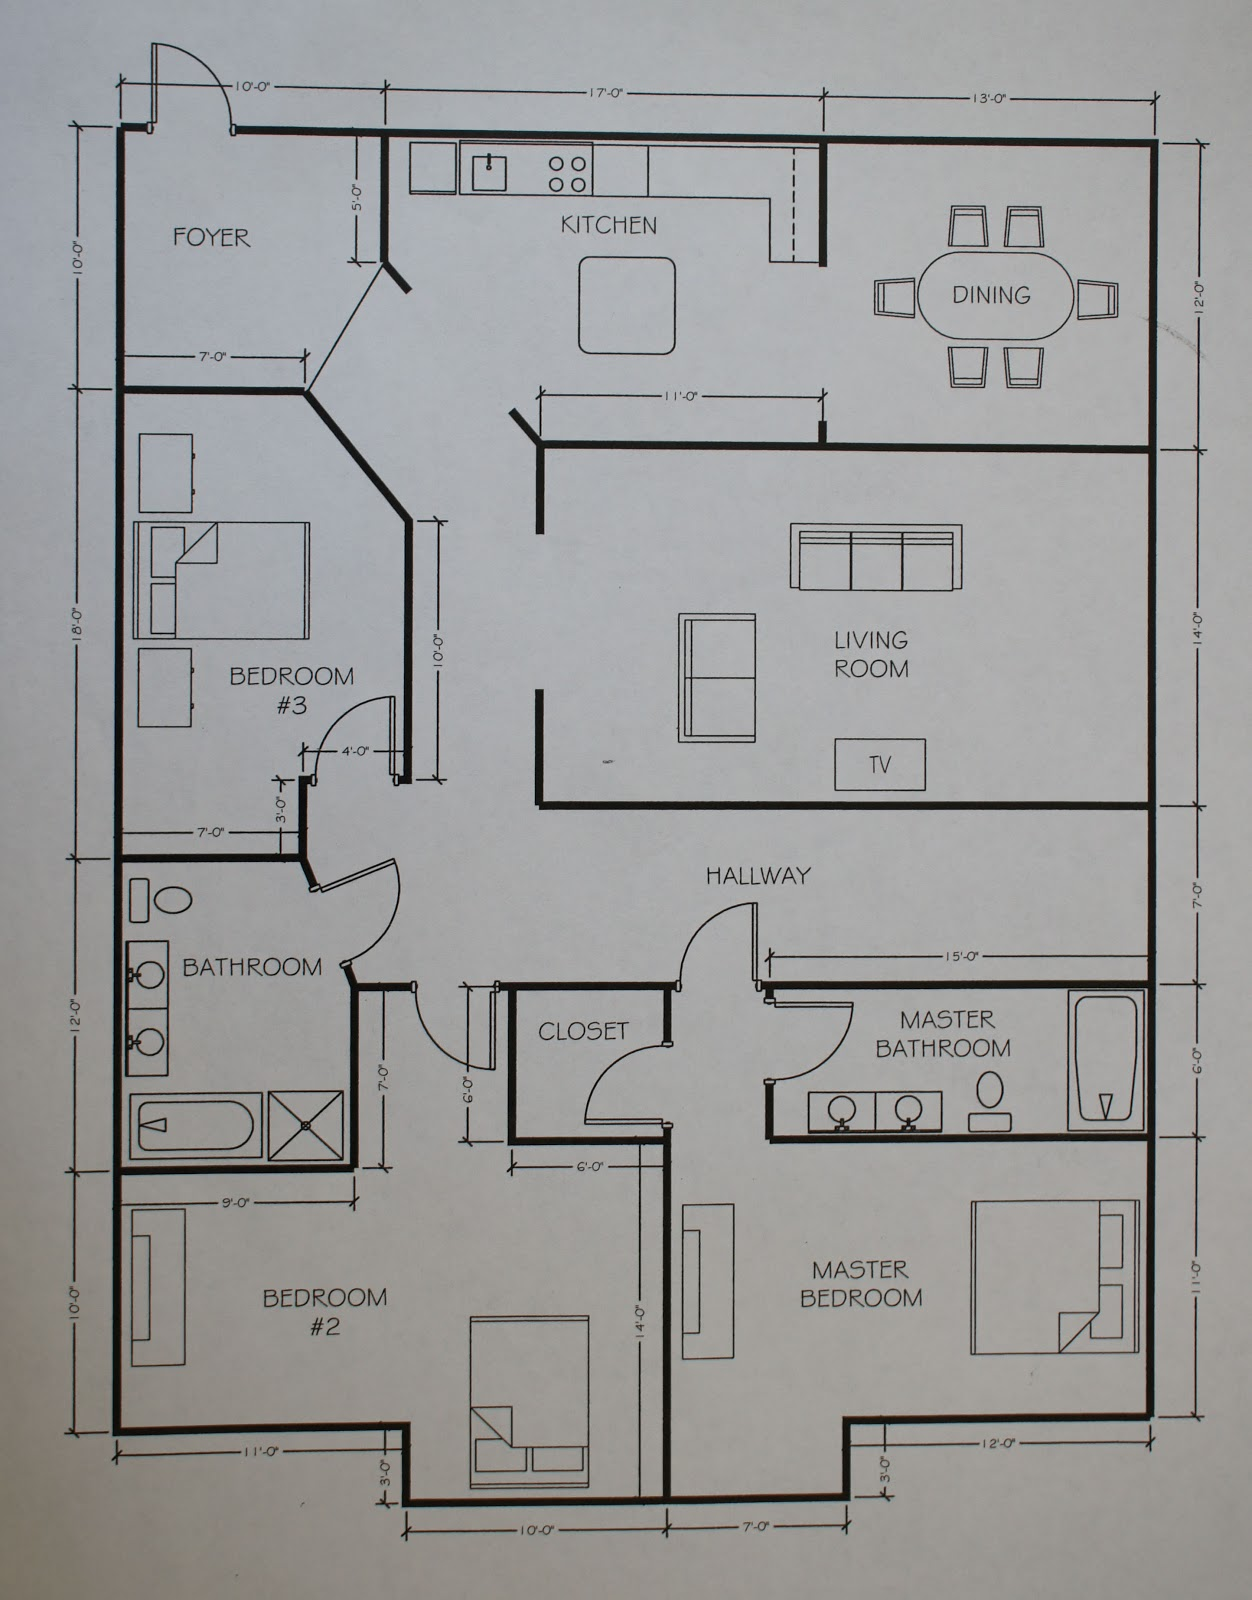 Everybody is a genius remodel Build your floor plan